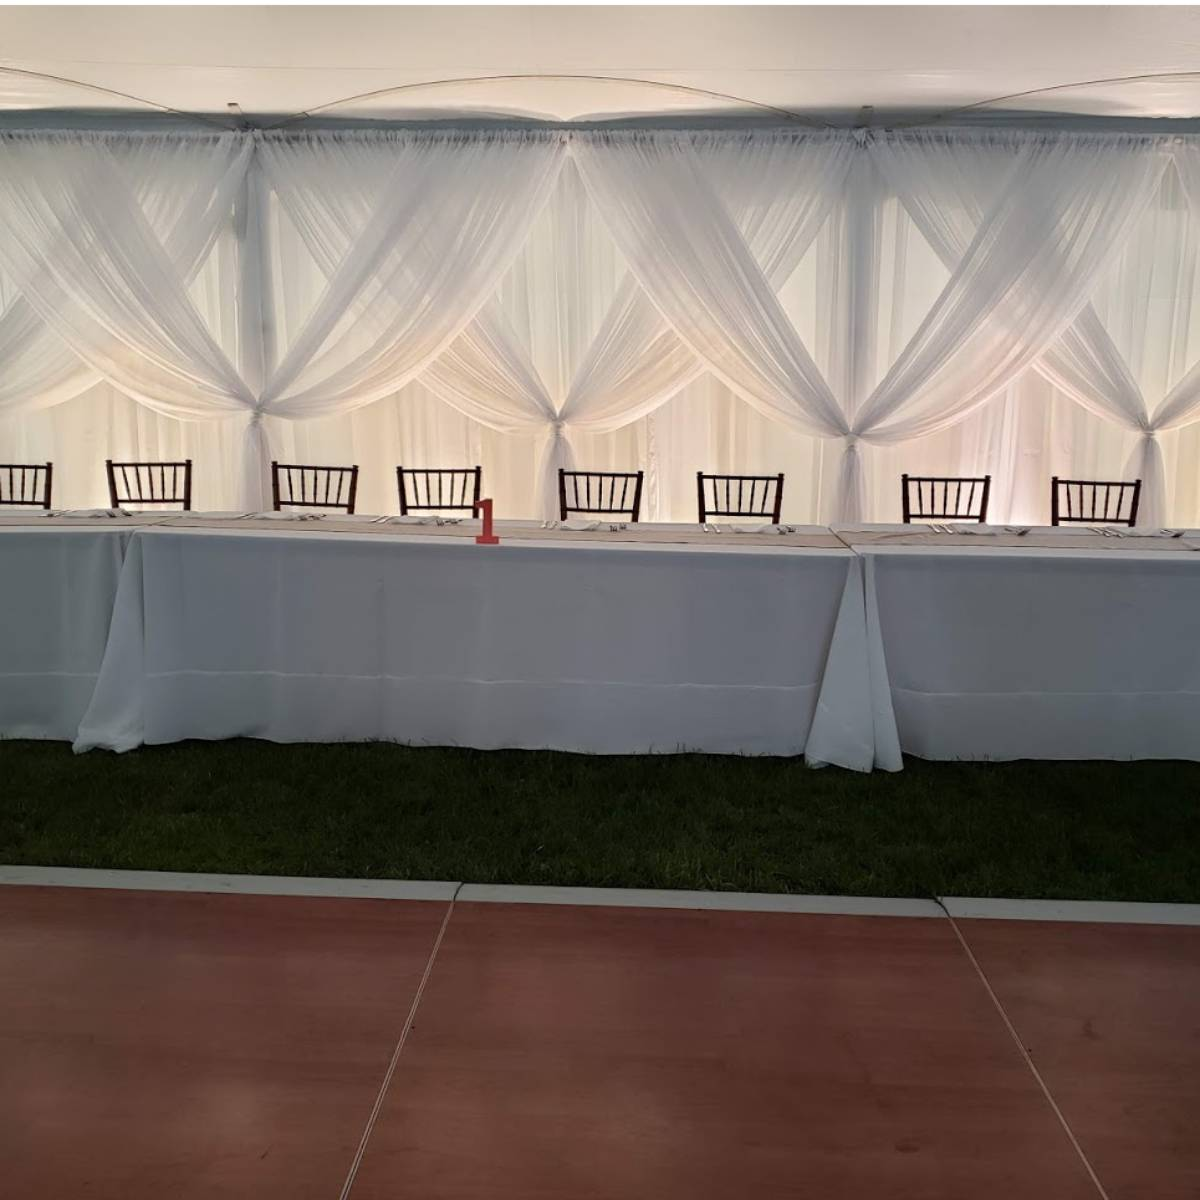 Sheer White Backdrop With Sheer White Front Layer Crisscrossed With Uplights